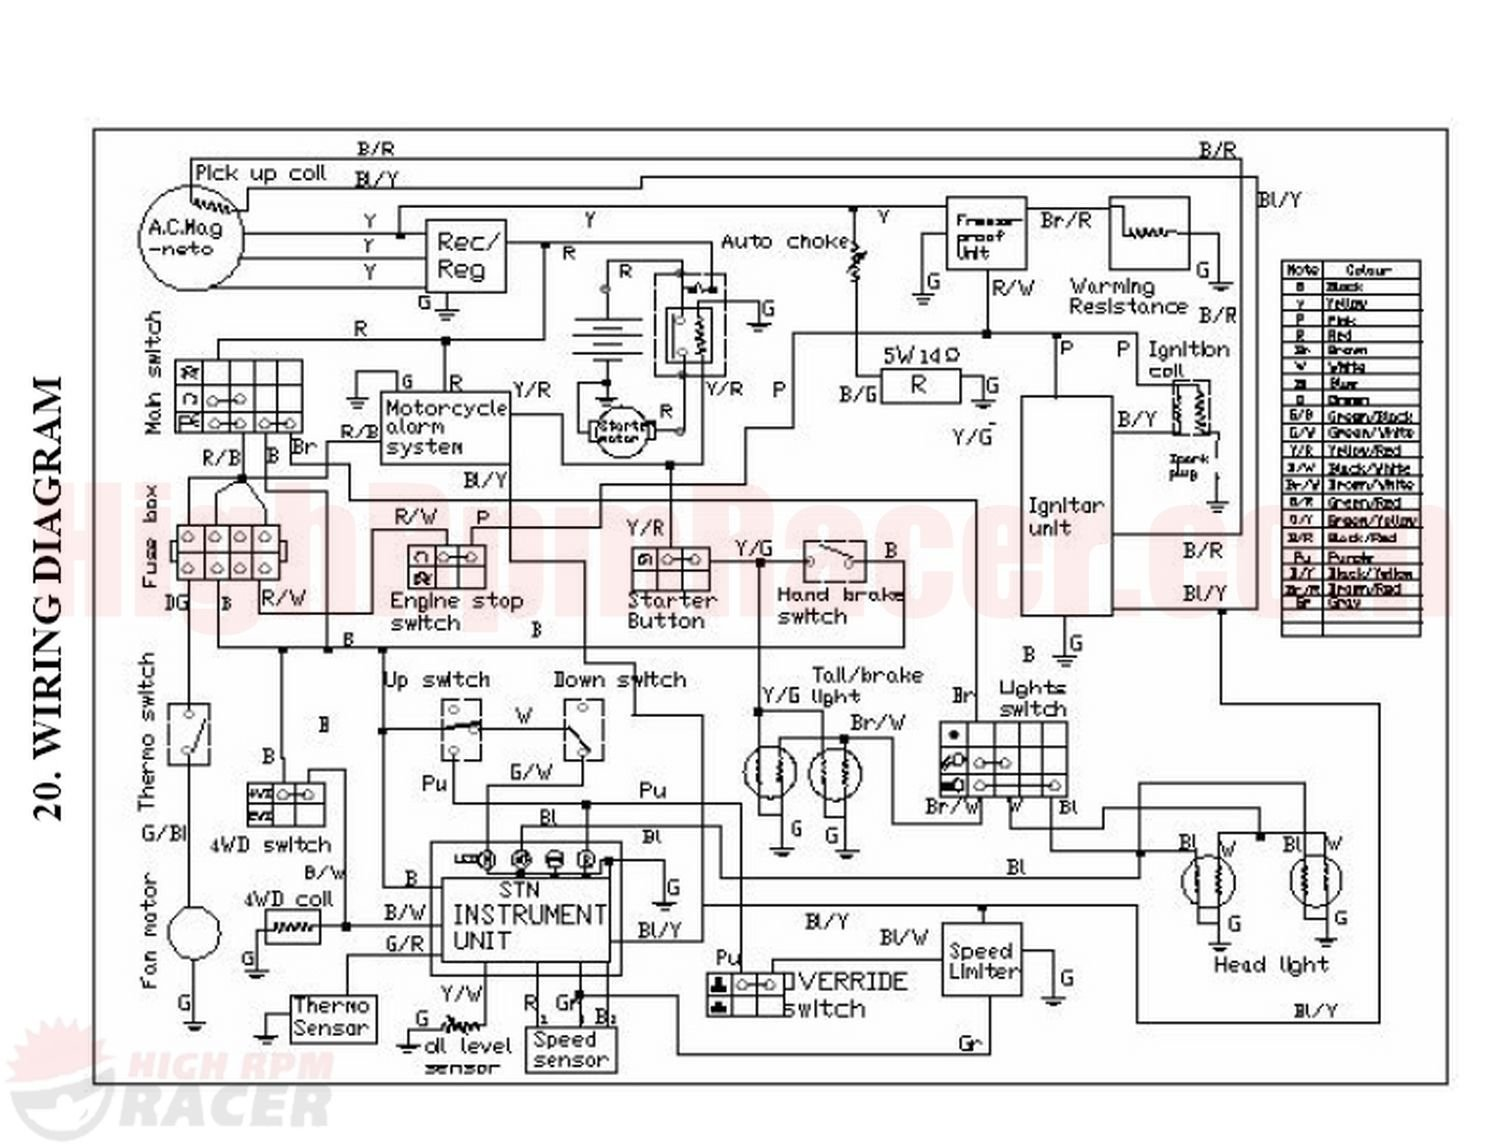 buyang300_wd buyang atv 300 wiring diagram $0 00 atv wiring diagram at webbmarketing.co